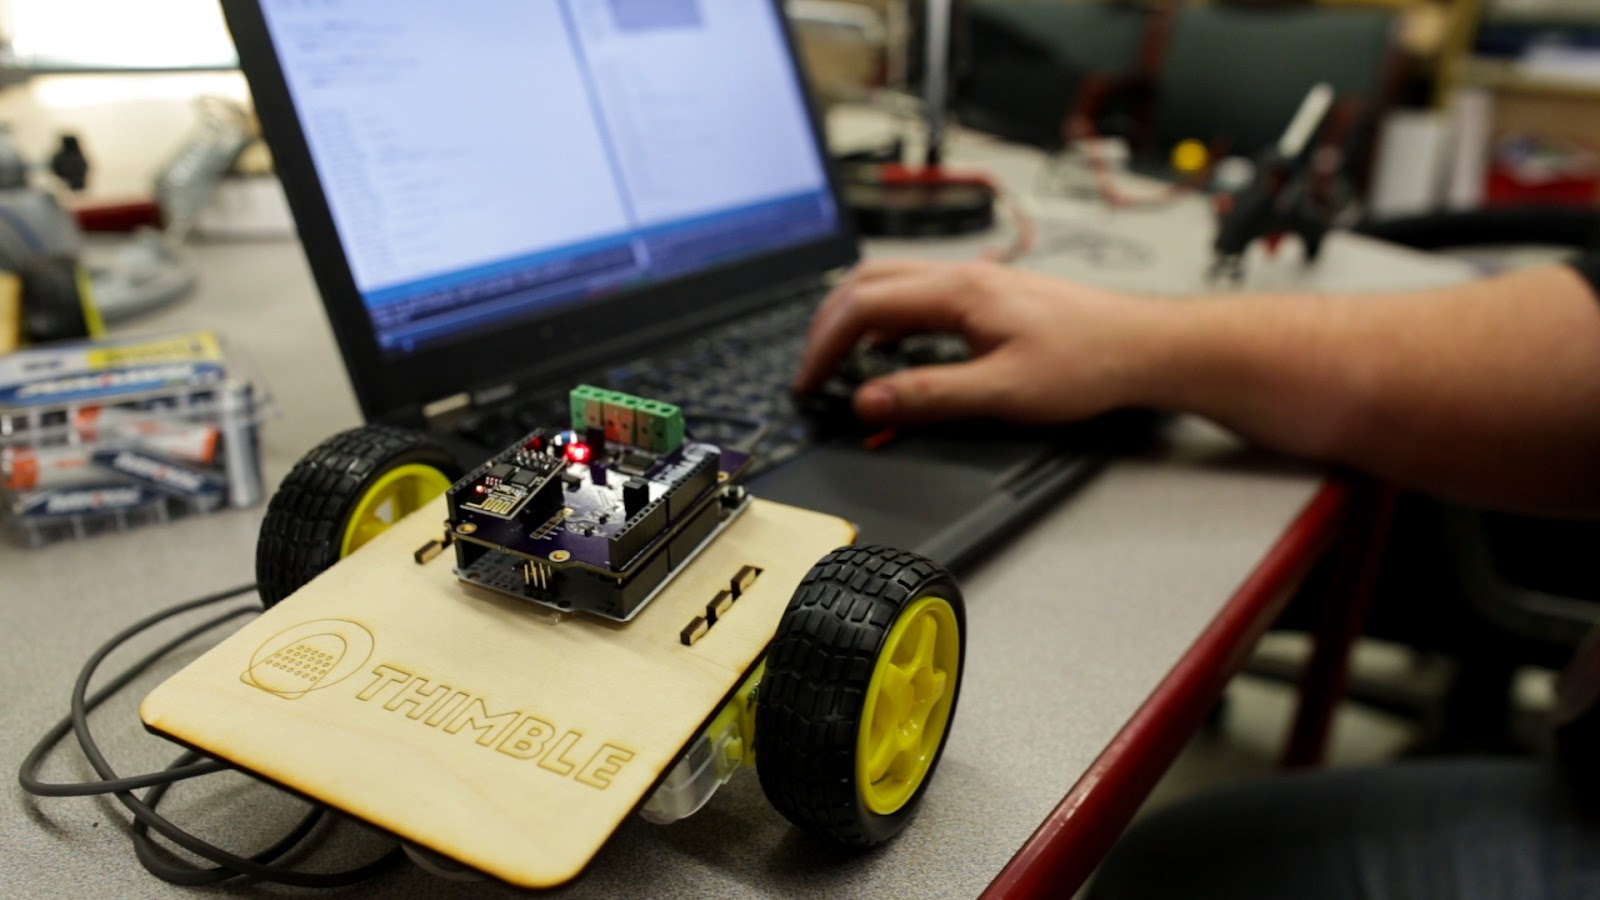 This is an image of a completed Thimble Wifi Robot Kit sitting on a table next to a keyboard and computer. There is a hand typing on the keyboard.